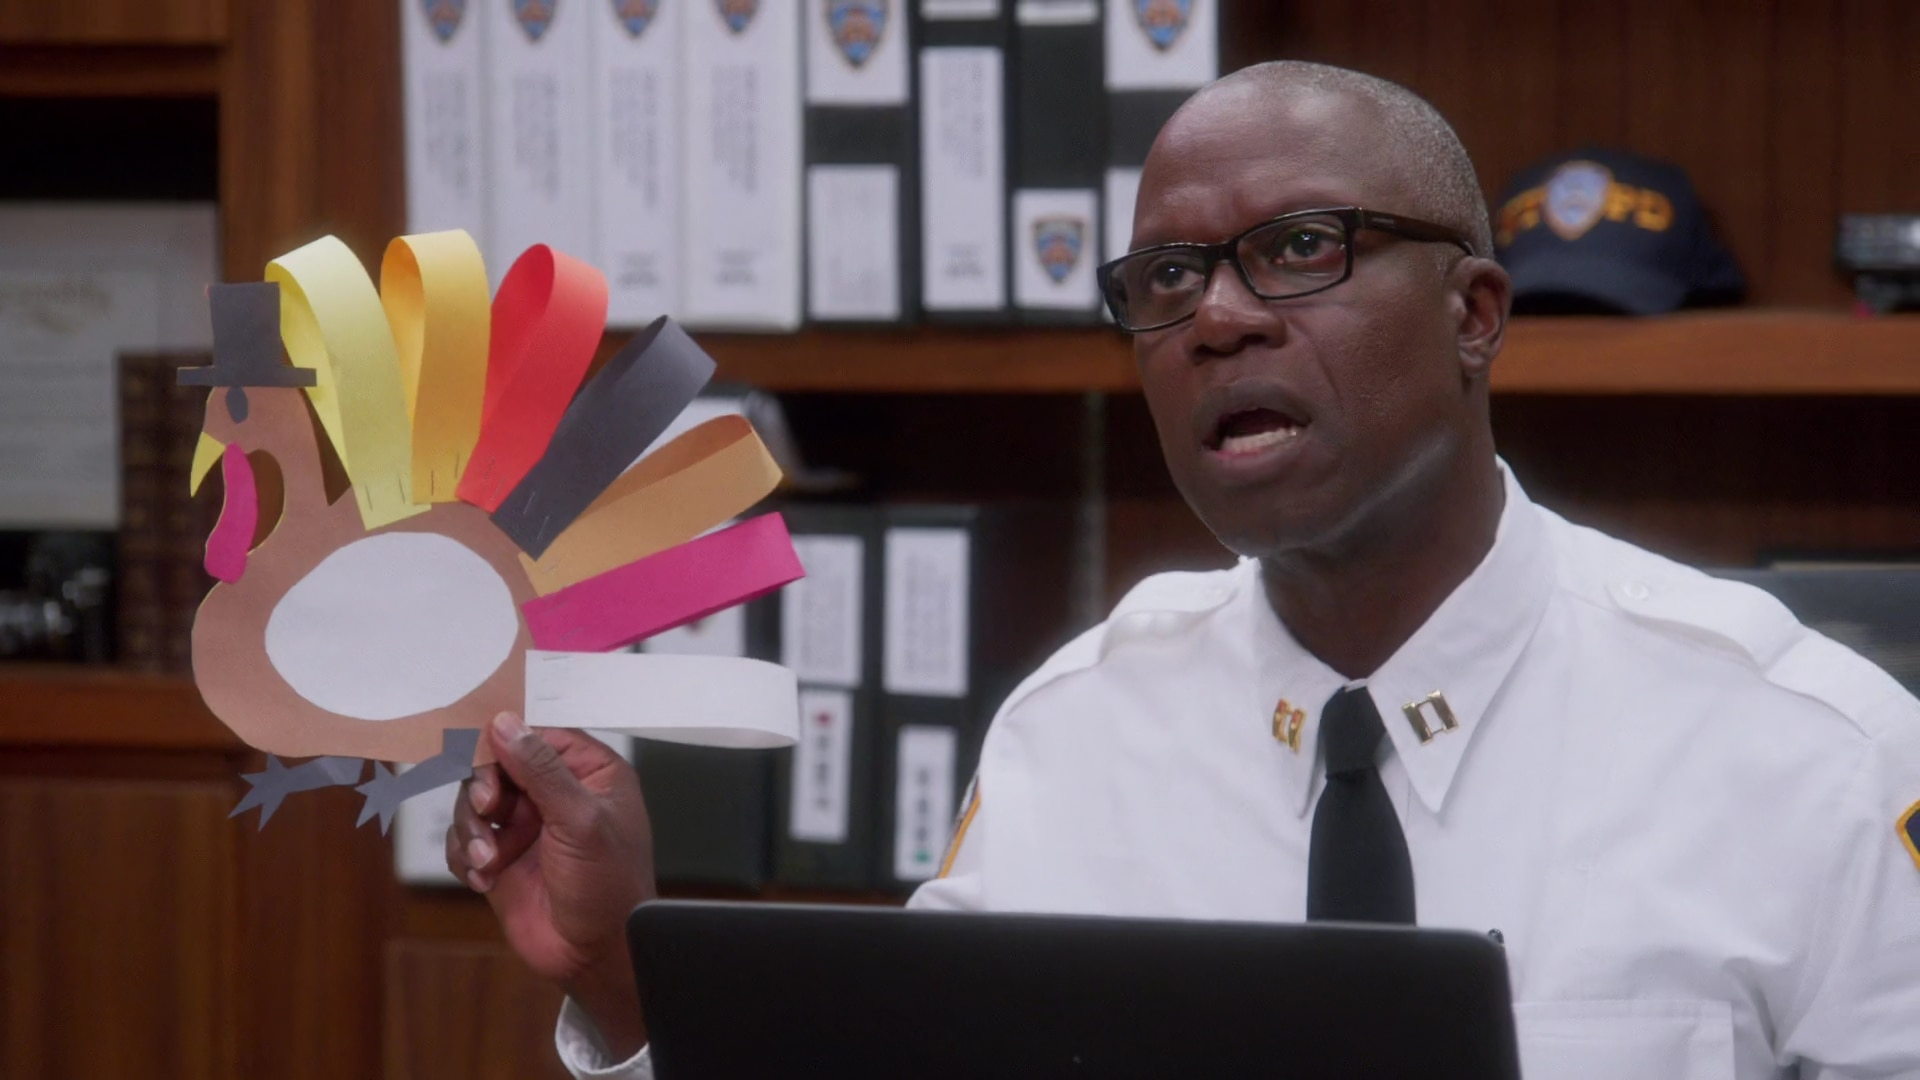 Captain Holt (Andre Braugher) in Brooklyn 99